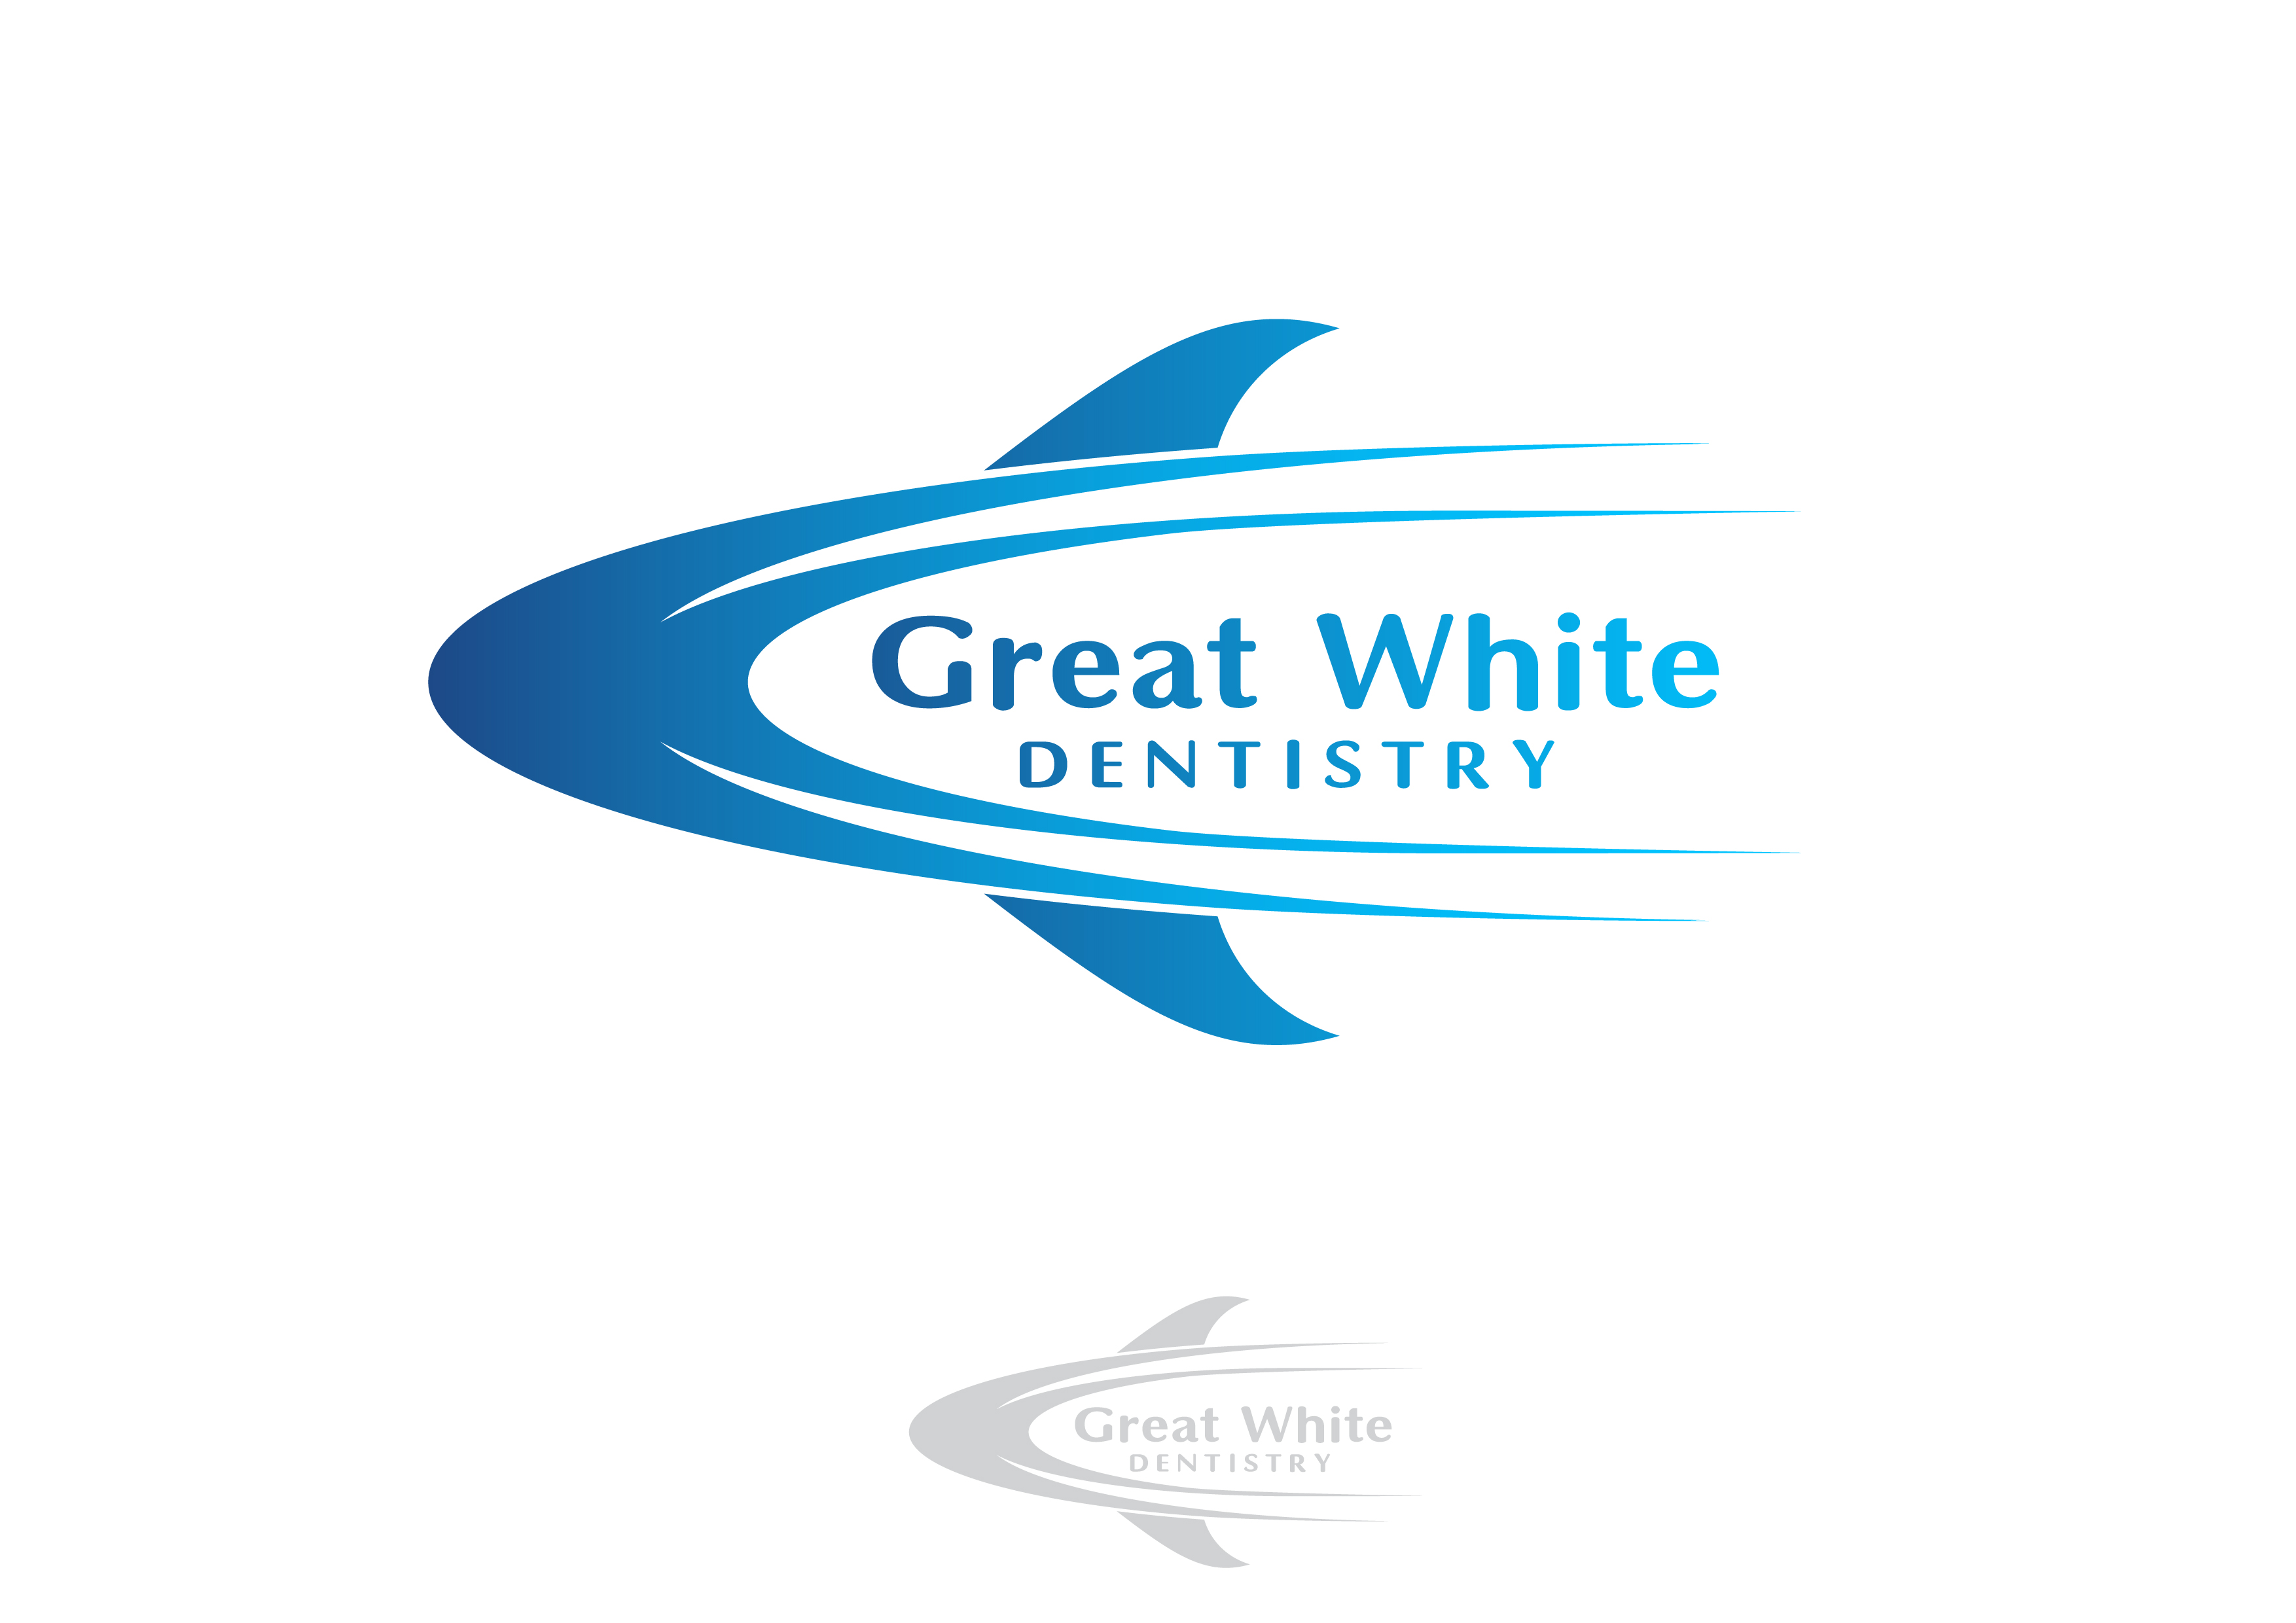 Logo Design by 3draw - Entry No. 55 in the Logo Design Contest Logo Design for Great White Dentistry.